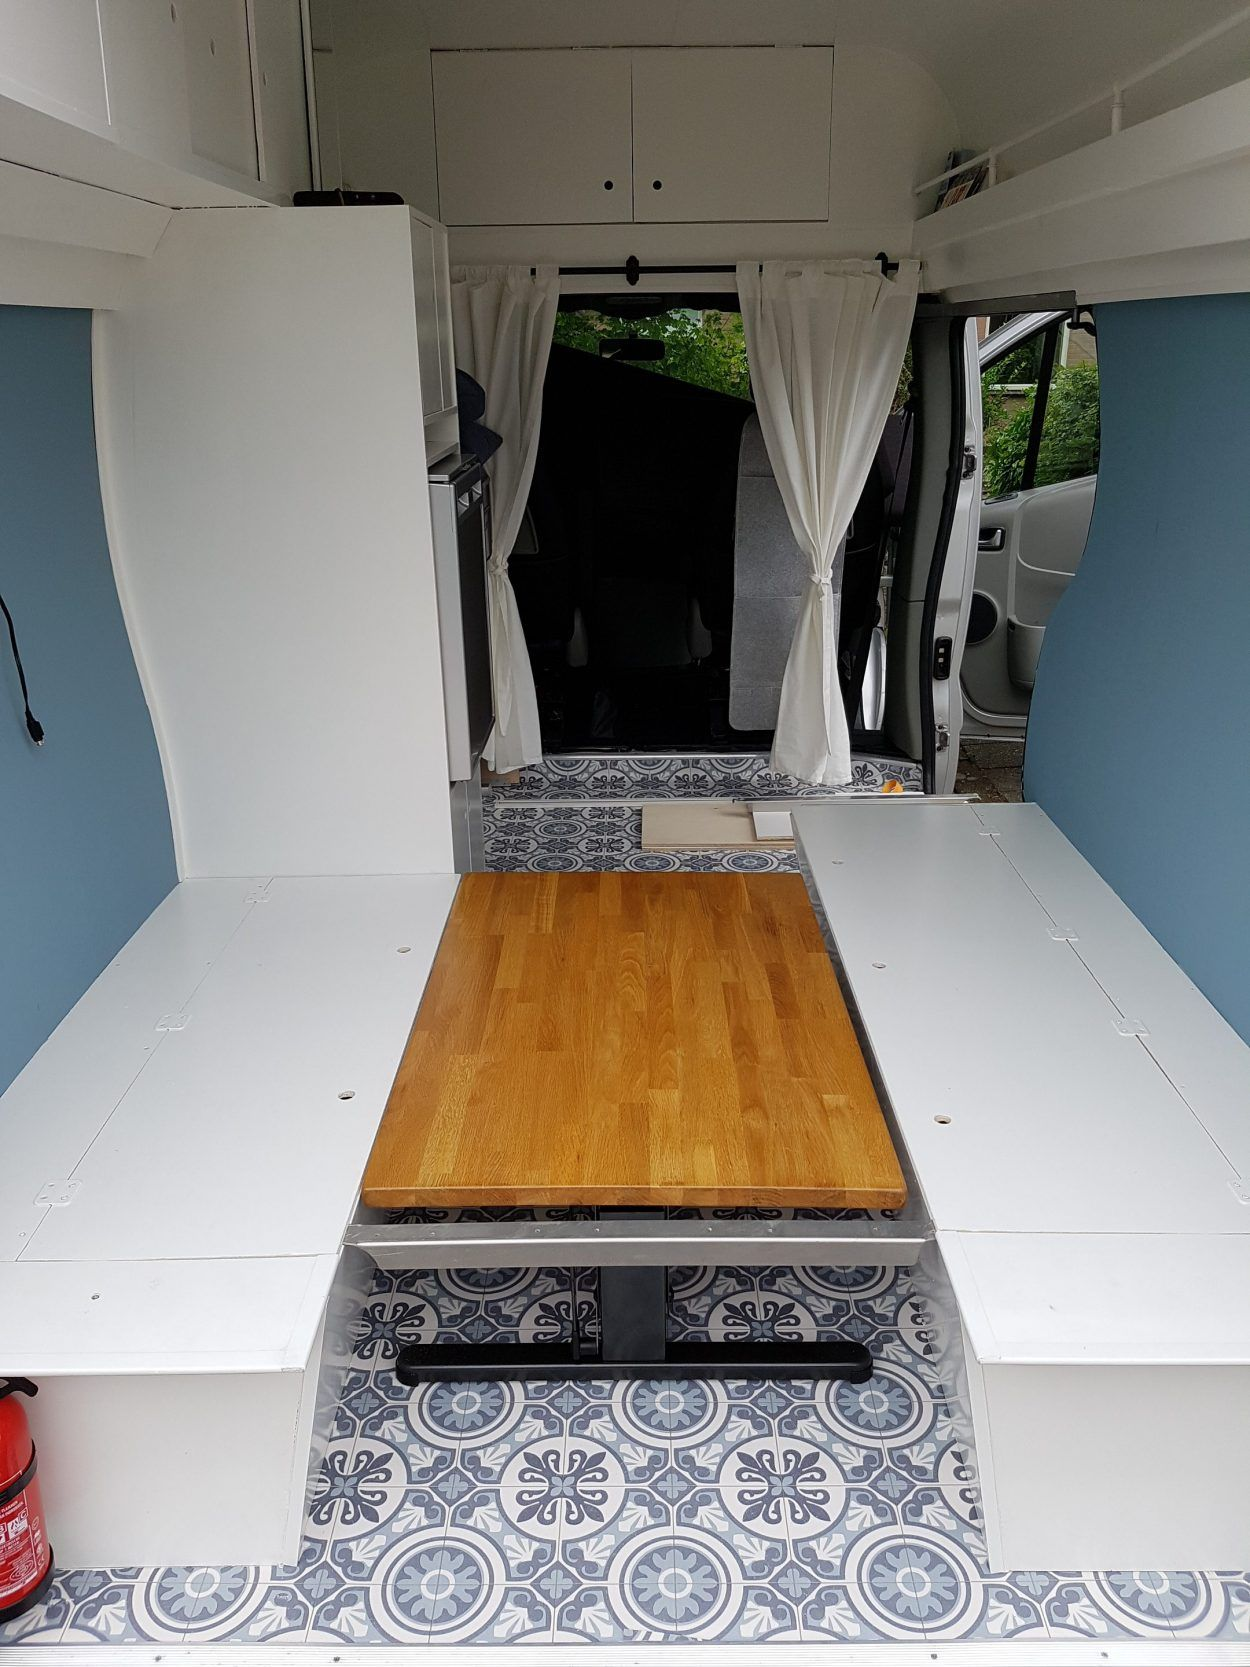 b3bce8d6b7 The Ultimate Guide to Your DIY Campervan Conversion - Step by Step to your  Tiny Home!